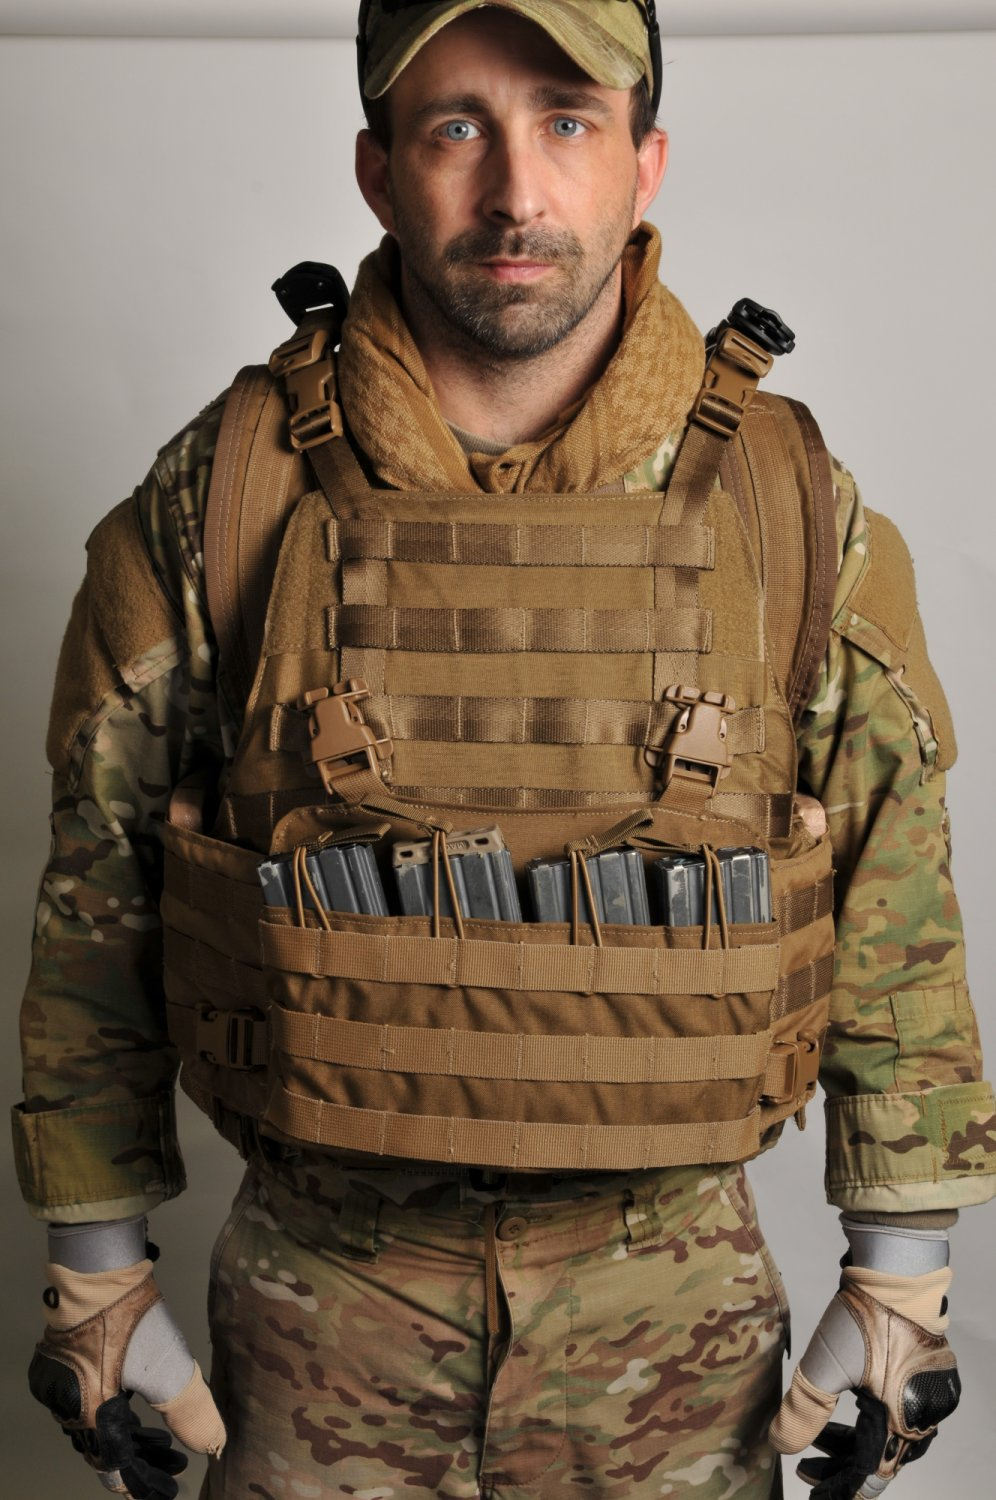 Archangel Armor Internal Frame Load Bearing System IFLBS Version 5 Tactical Armor Plate Carrier System Paul Carter Photo 3 <!  :en  >Archangel Armor Internal Frame Load Bearing System (IFLBS) Version 5 Tactical Armor Plate Carrier/Tactical Vest System: Lighten your load when youre in combat mode!<!  :  >